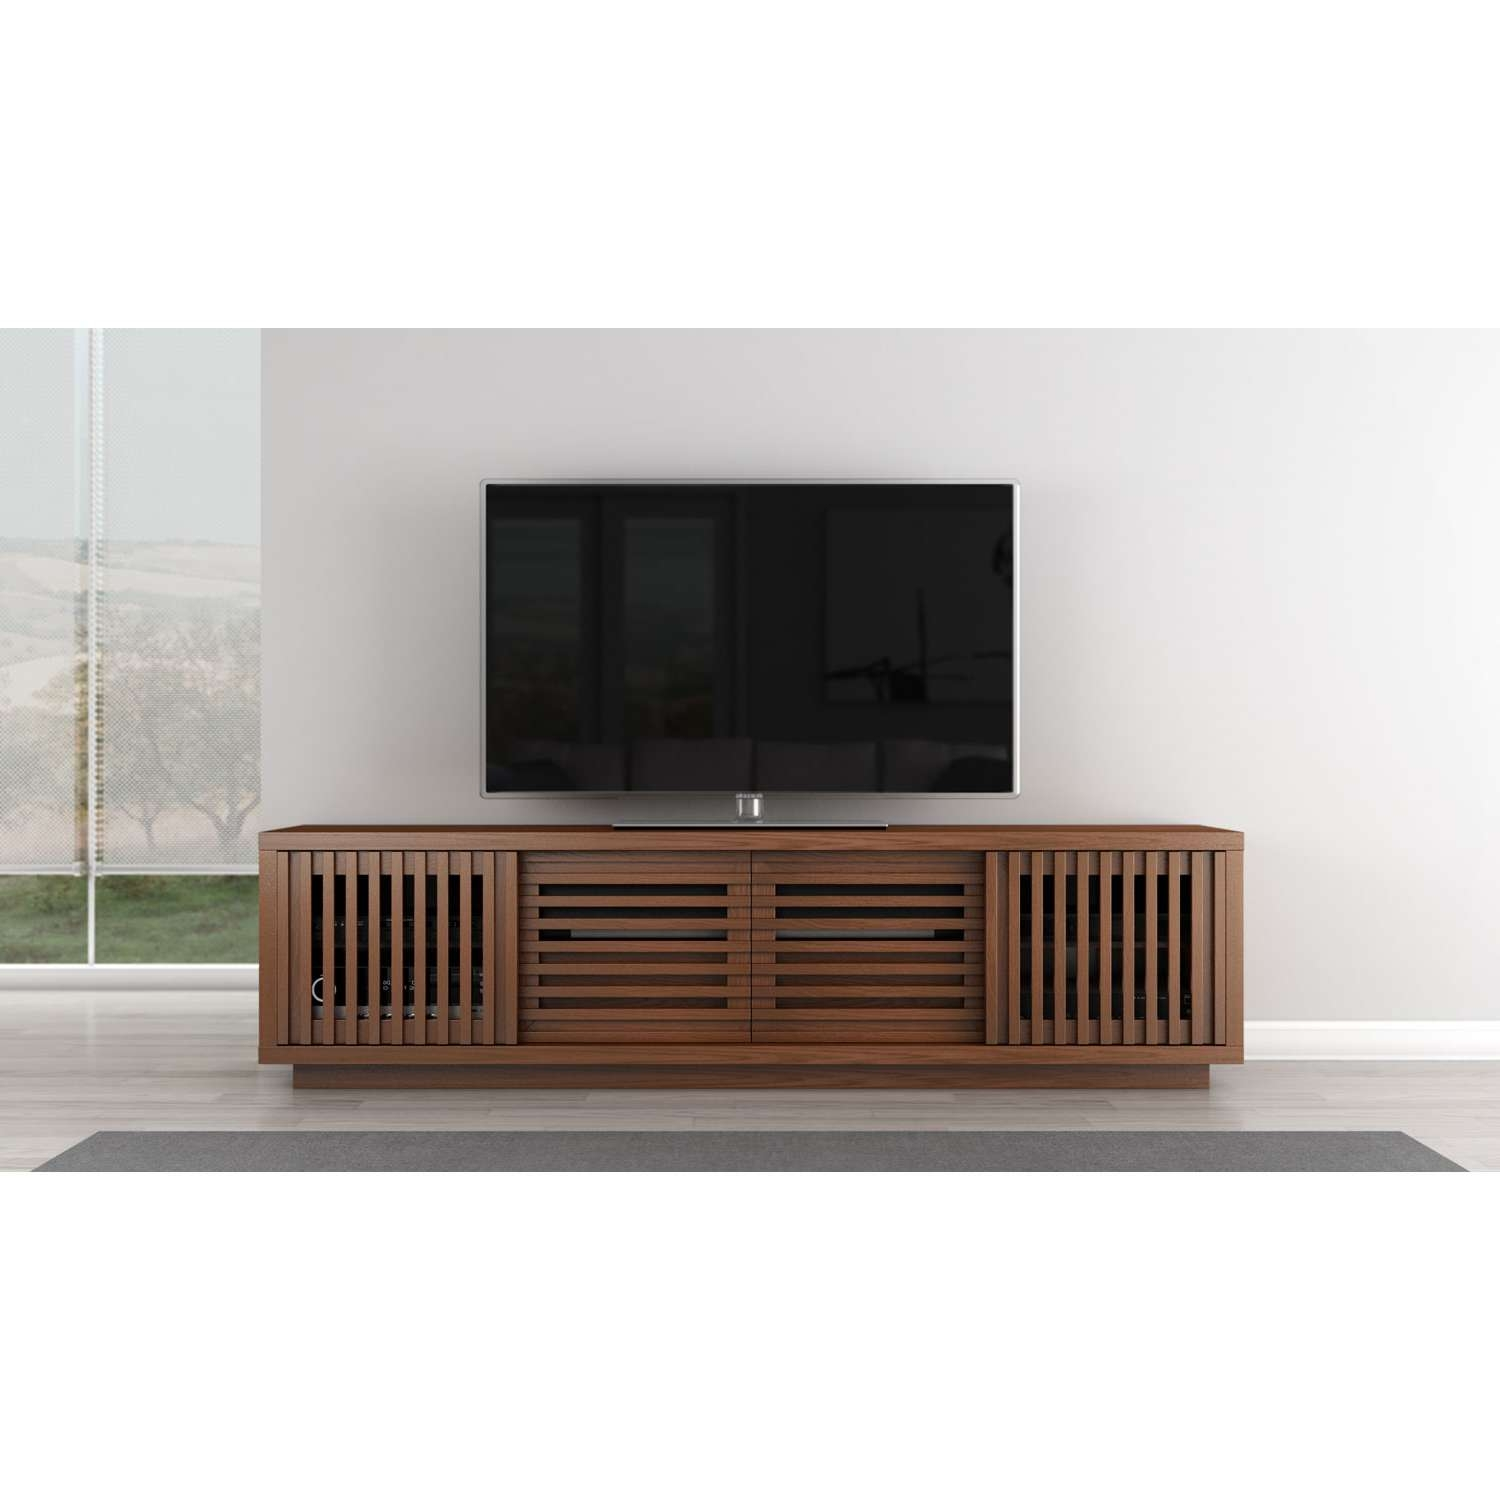 Signature Contemporary Rustic 82 Inch Warm Honey Finished White Regarding White Wood Tv Stands (View 6 of 15)